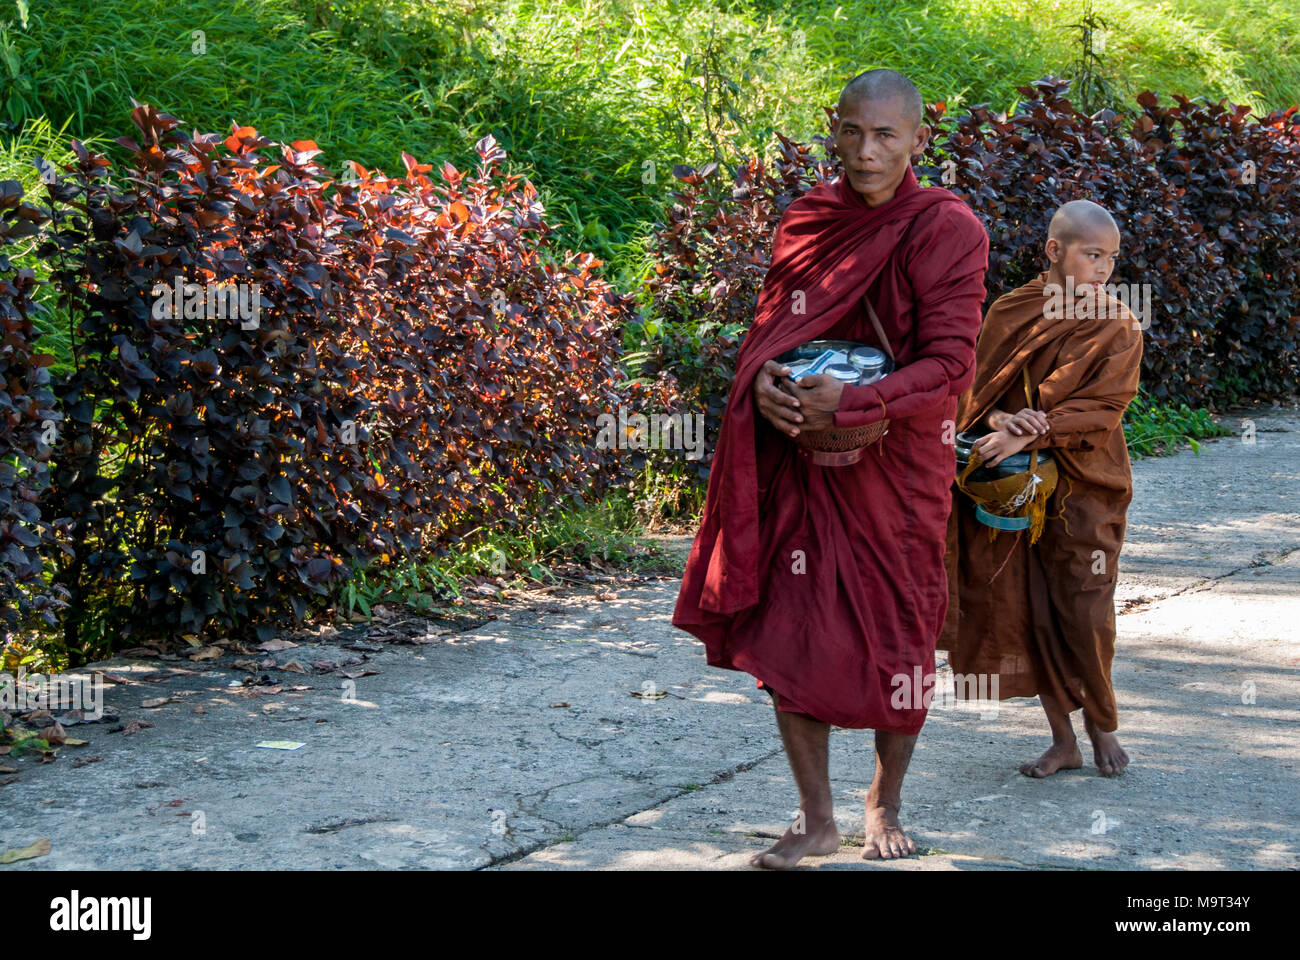 a monk ascends to the Golden Rock Pagoda followed by his disciple - Stock Image